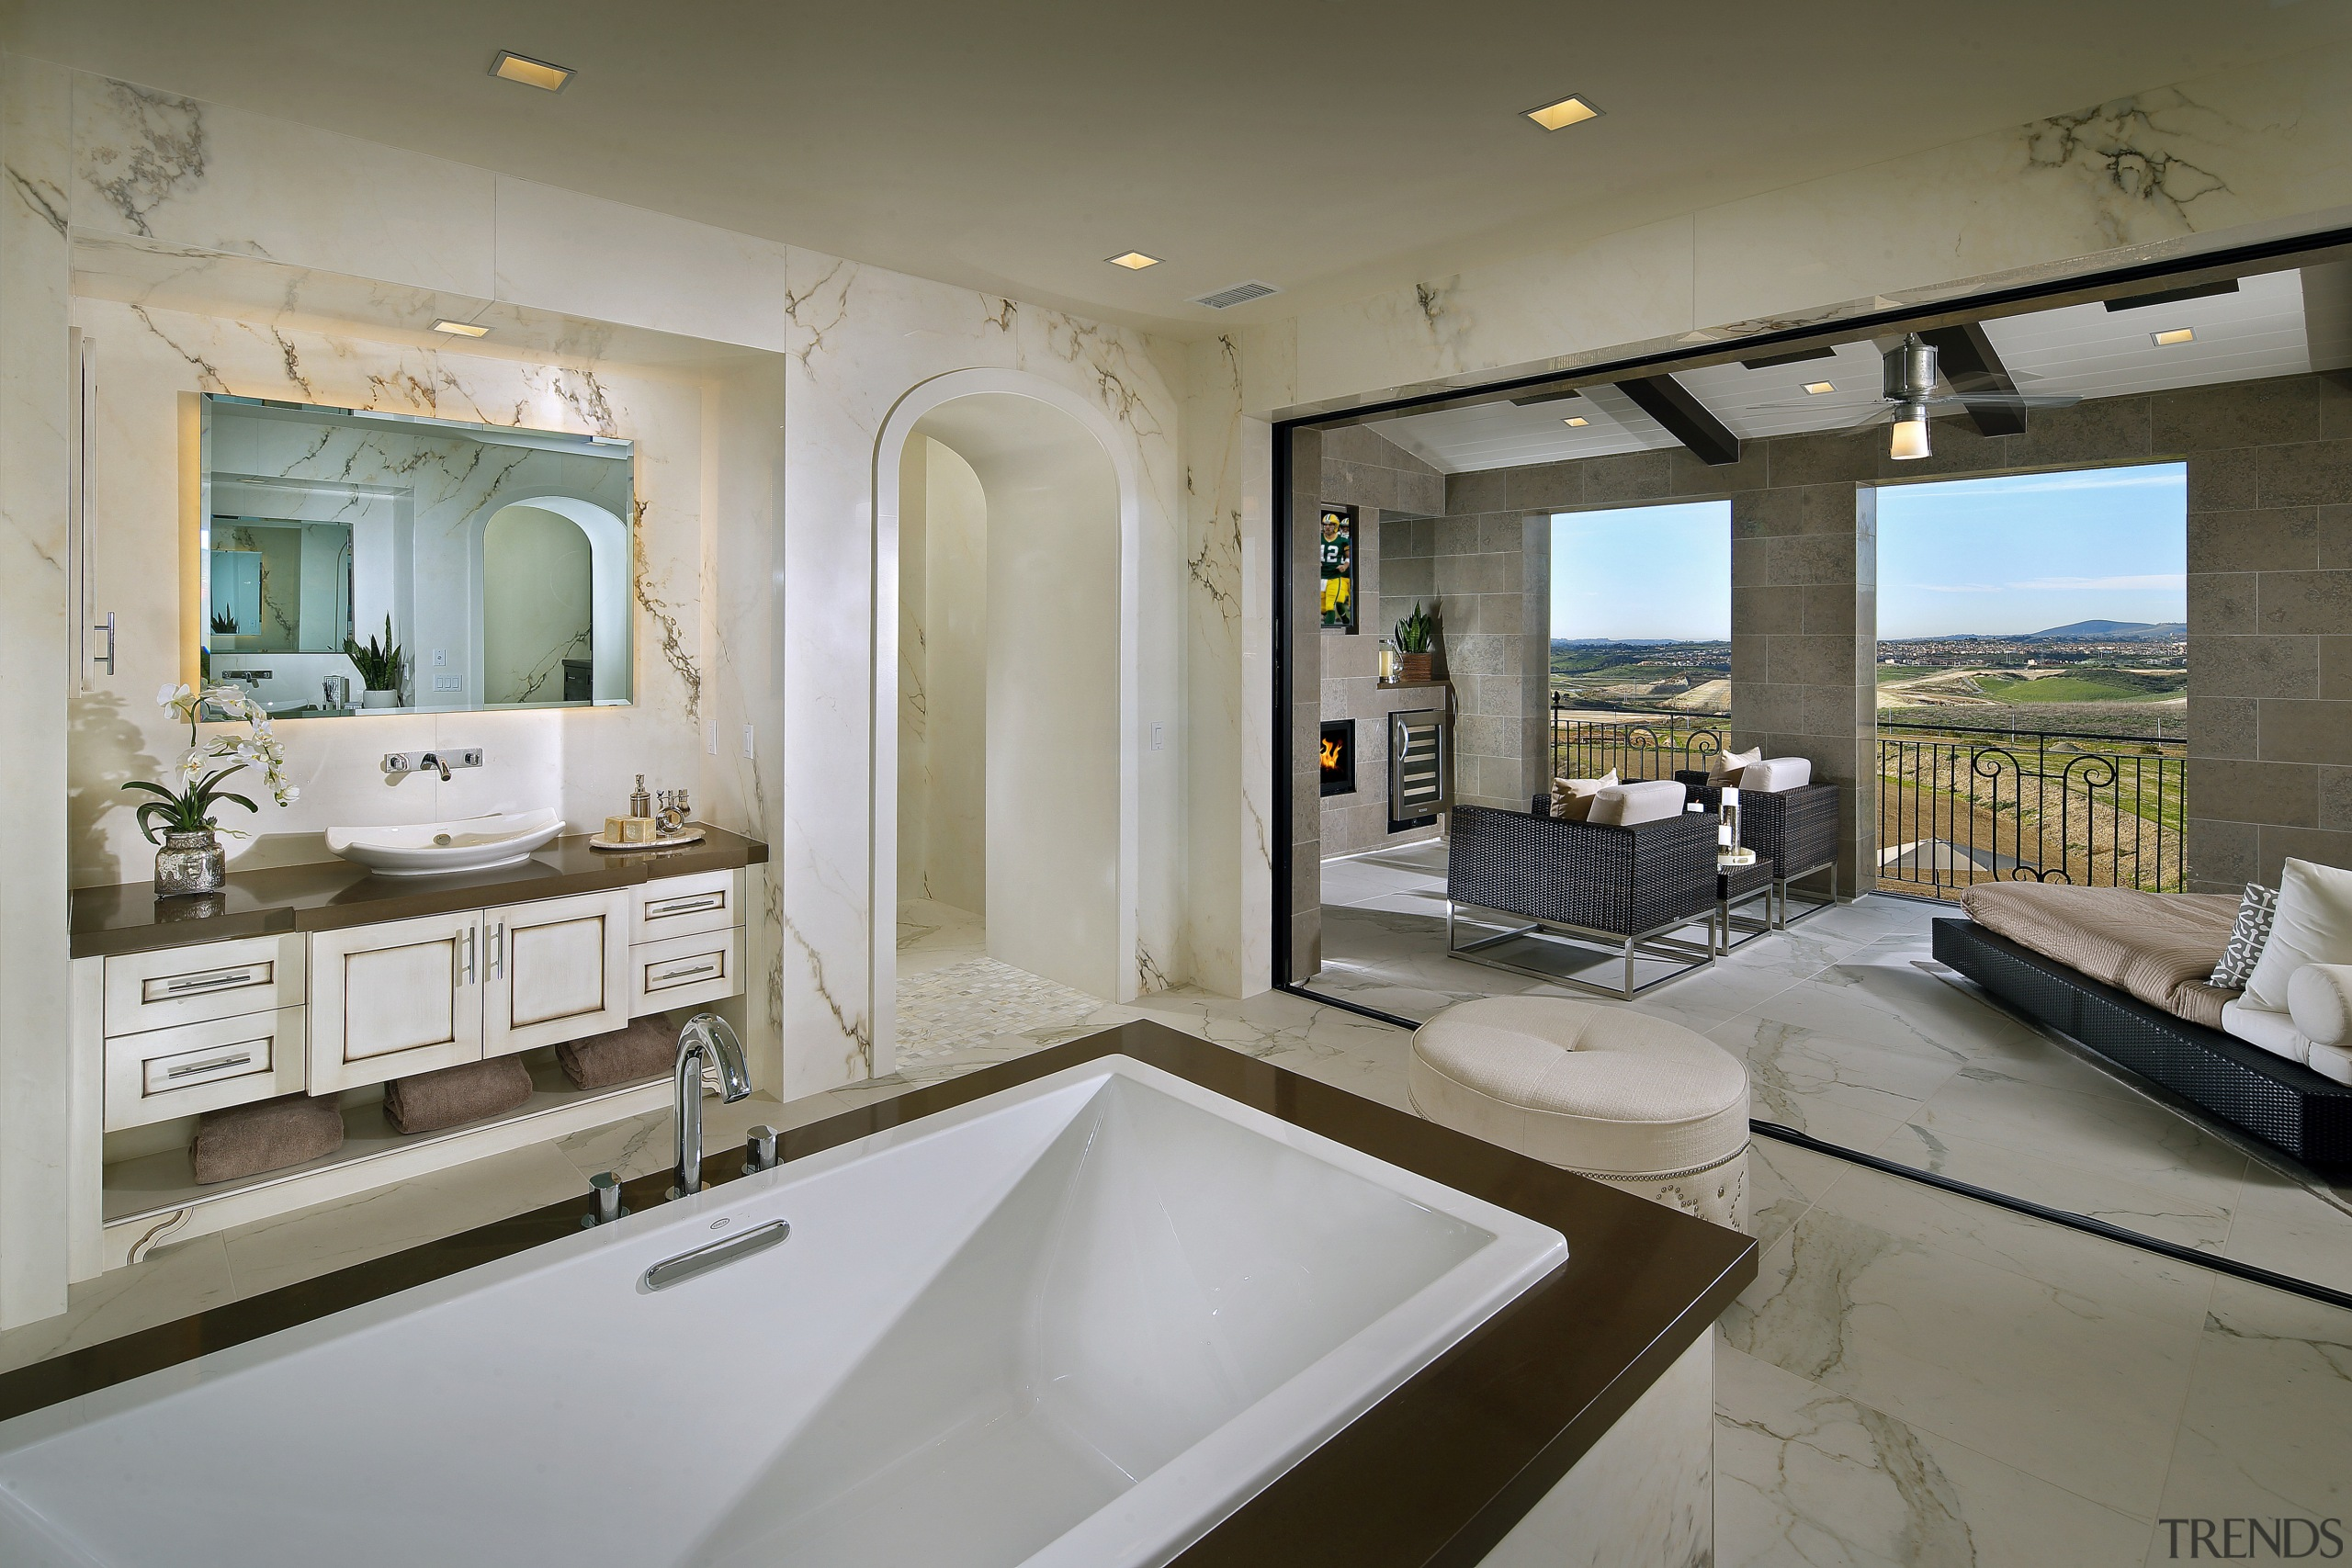 Stacking glass doors separate the master bathroom from bathroom, countertop, estate, home, interior design, real estate, room, gray